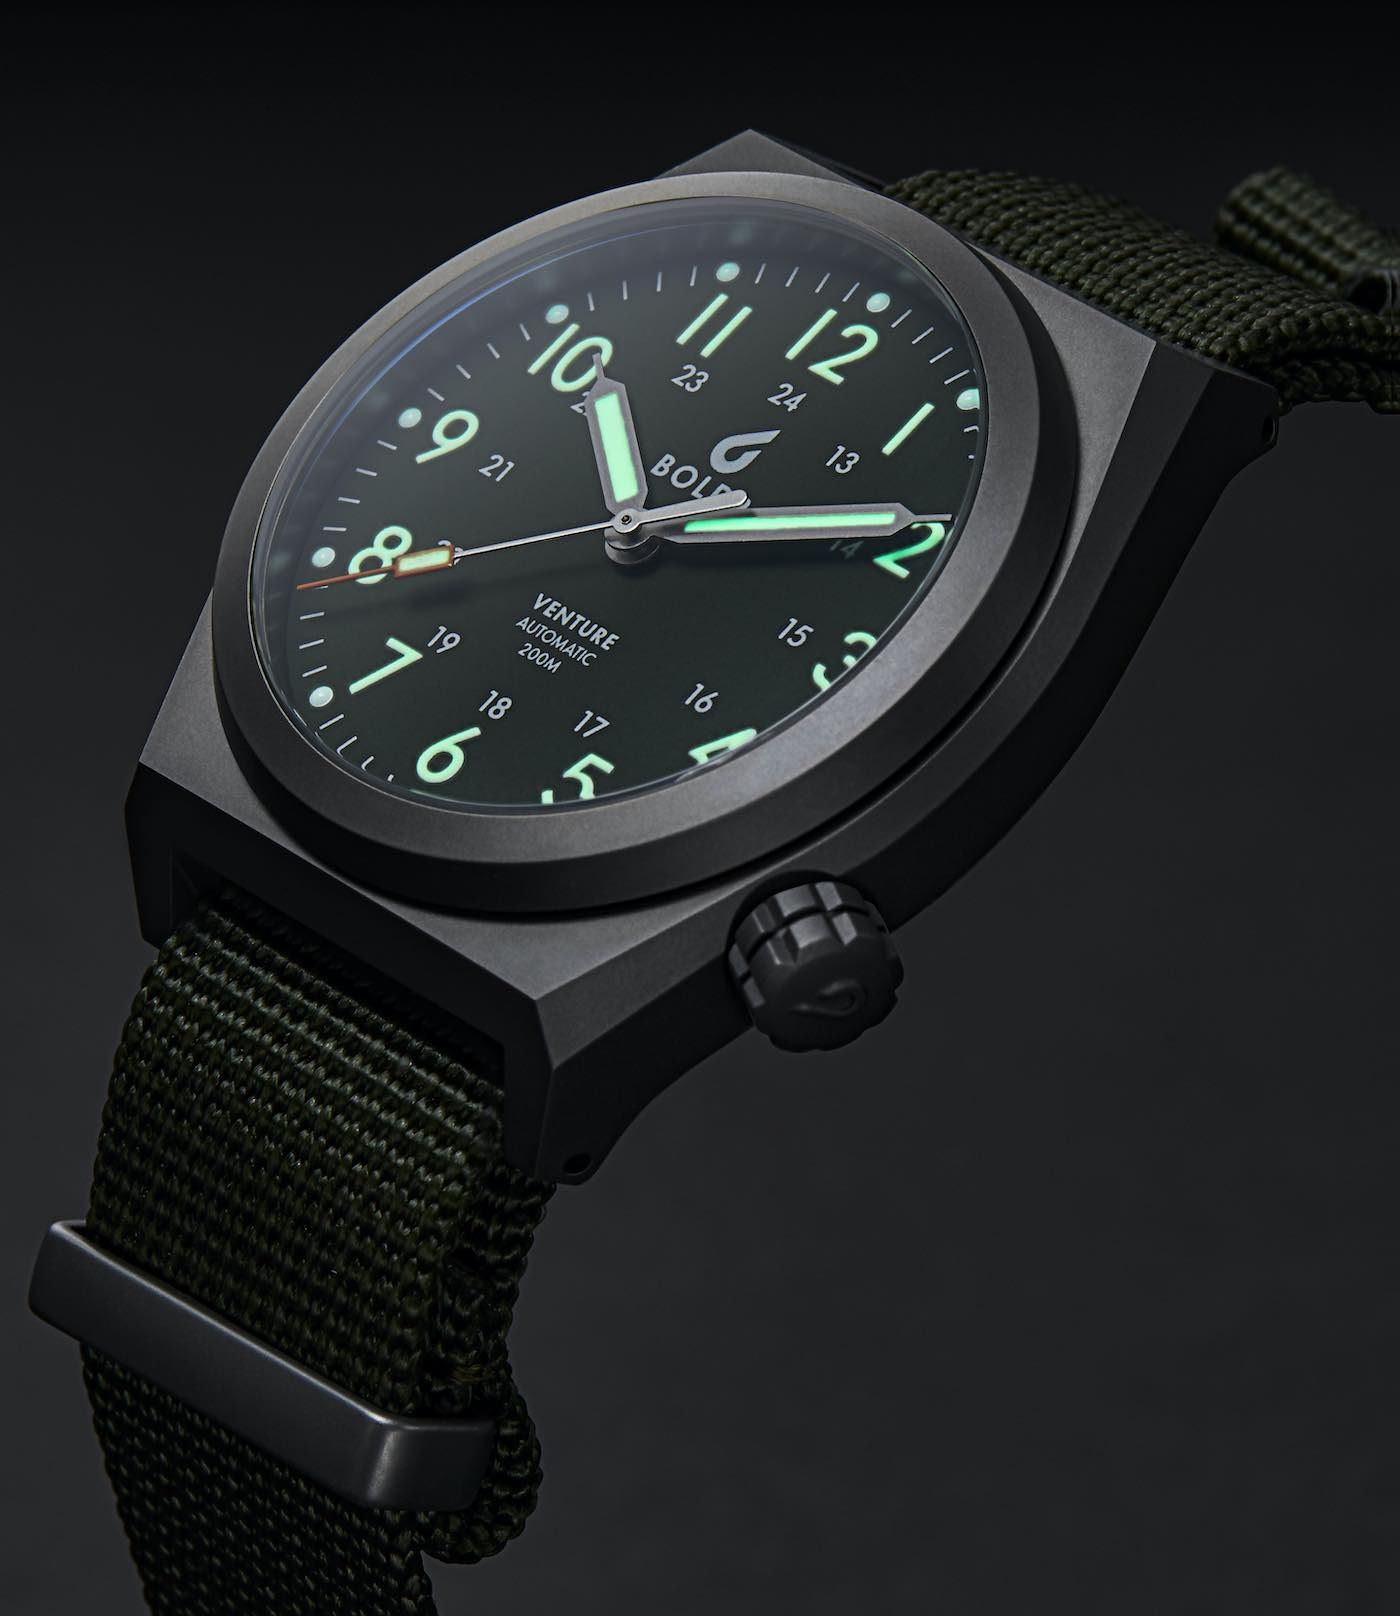 Titanium Boldr Venture Watch Built For Extreme Use In The Field Ablogtowatch Field Watches Mens Watches Popular Watches